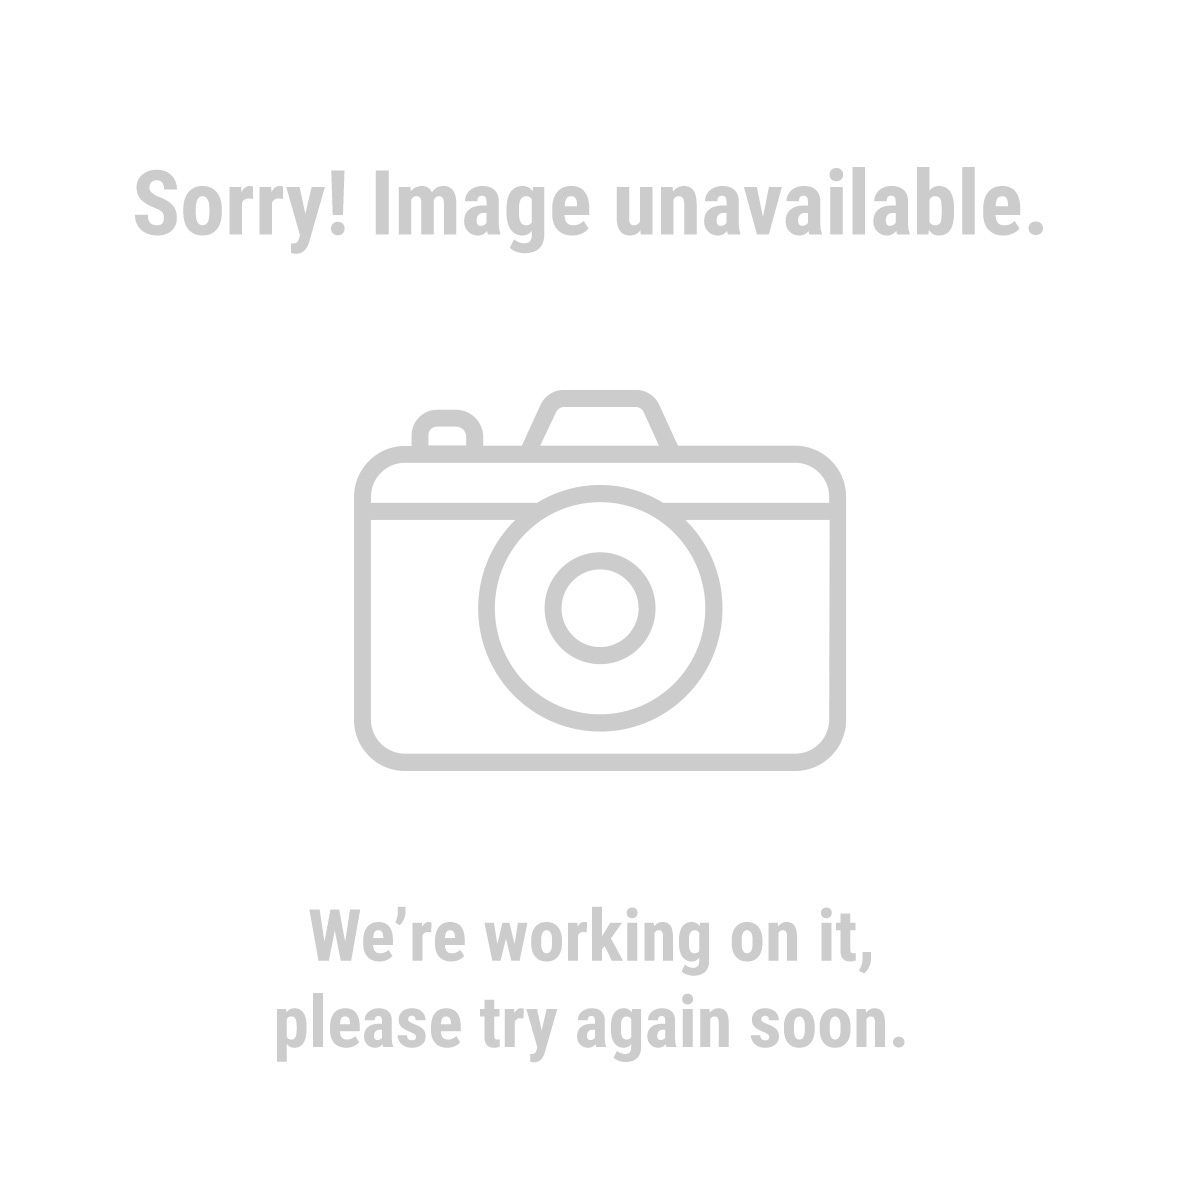 Off Road Winch with Automatic Load-Holding Brake, 12,000 lb. Capacity